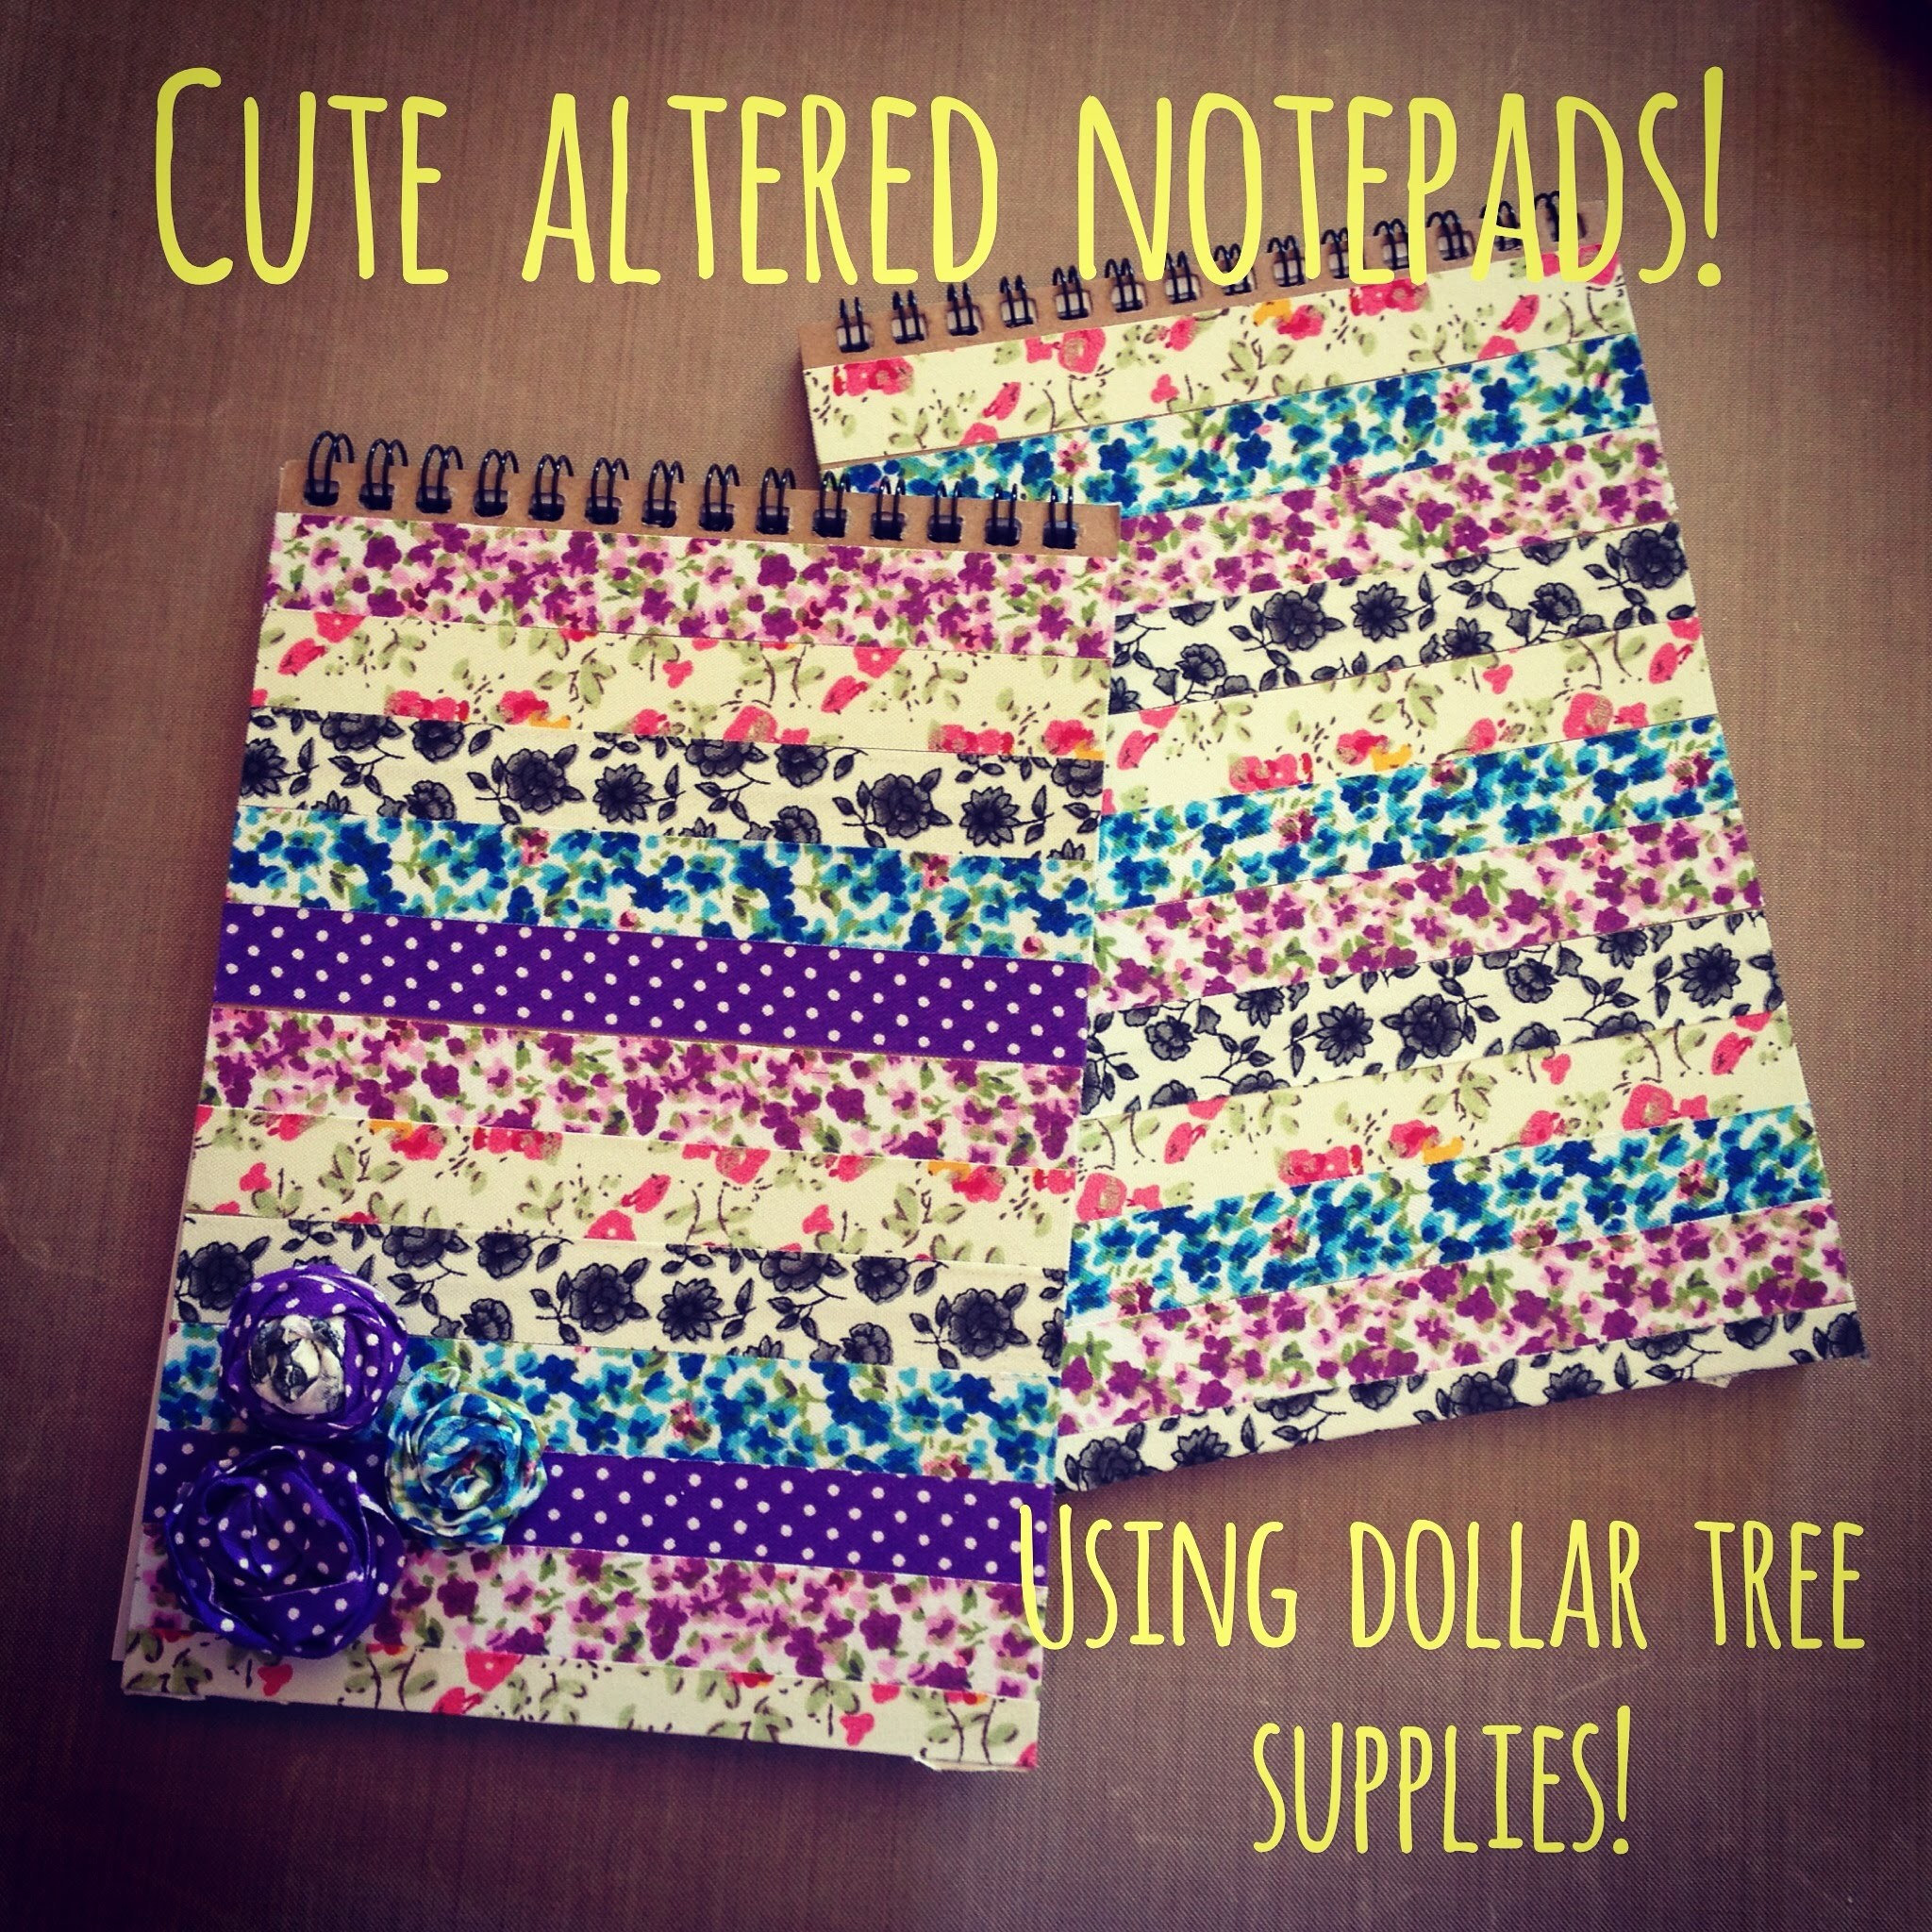 Cute Altered Notepads. with Dollar Tree supplies!